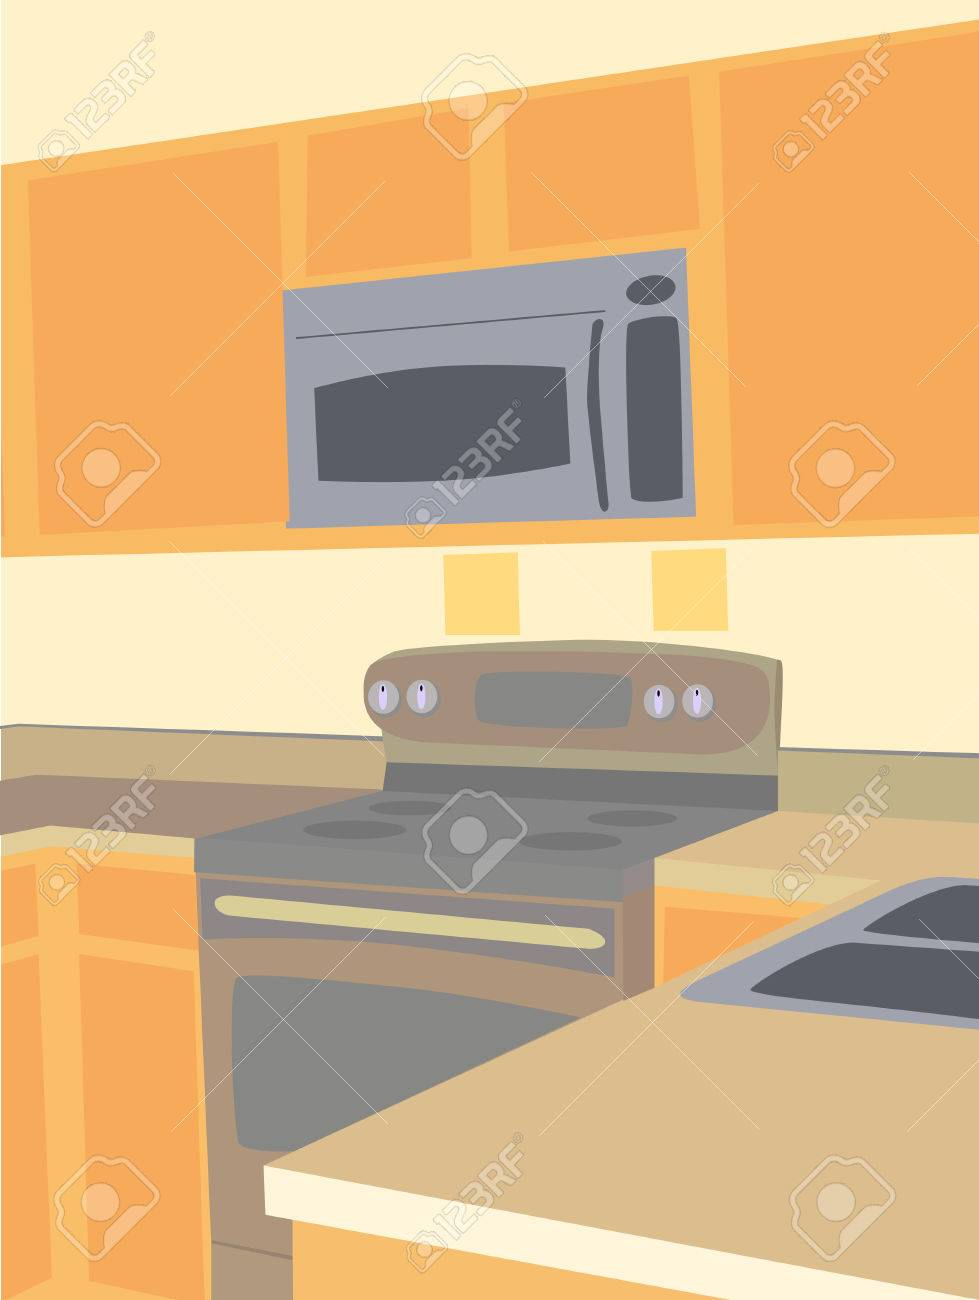 Cartoon kitchen counter gallery - Cartoon Kitchen Counter Corner Angled View Of Empty Kitchen Microwave And Stove Counter Tops Stock